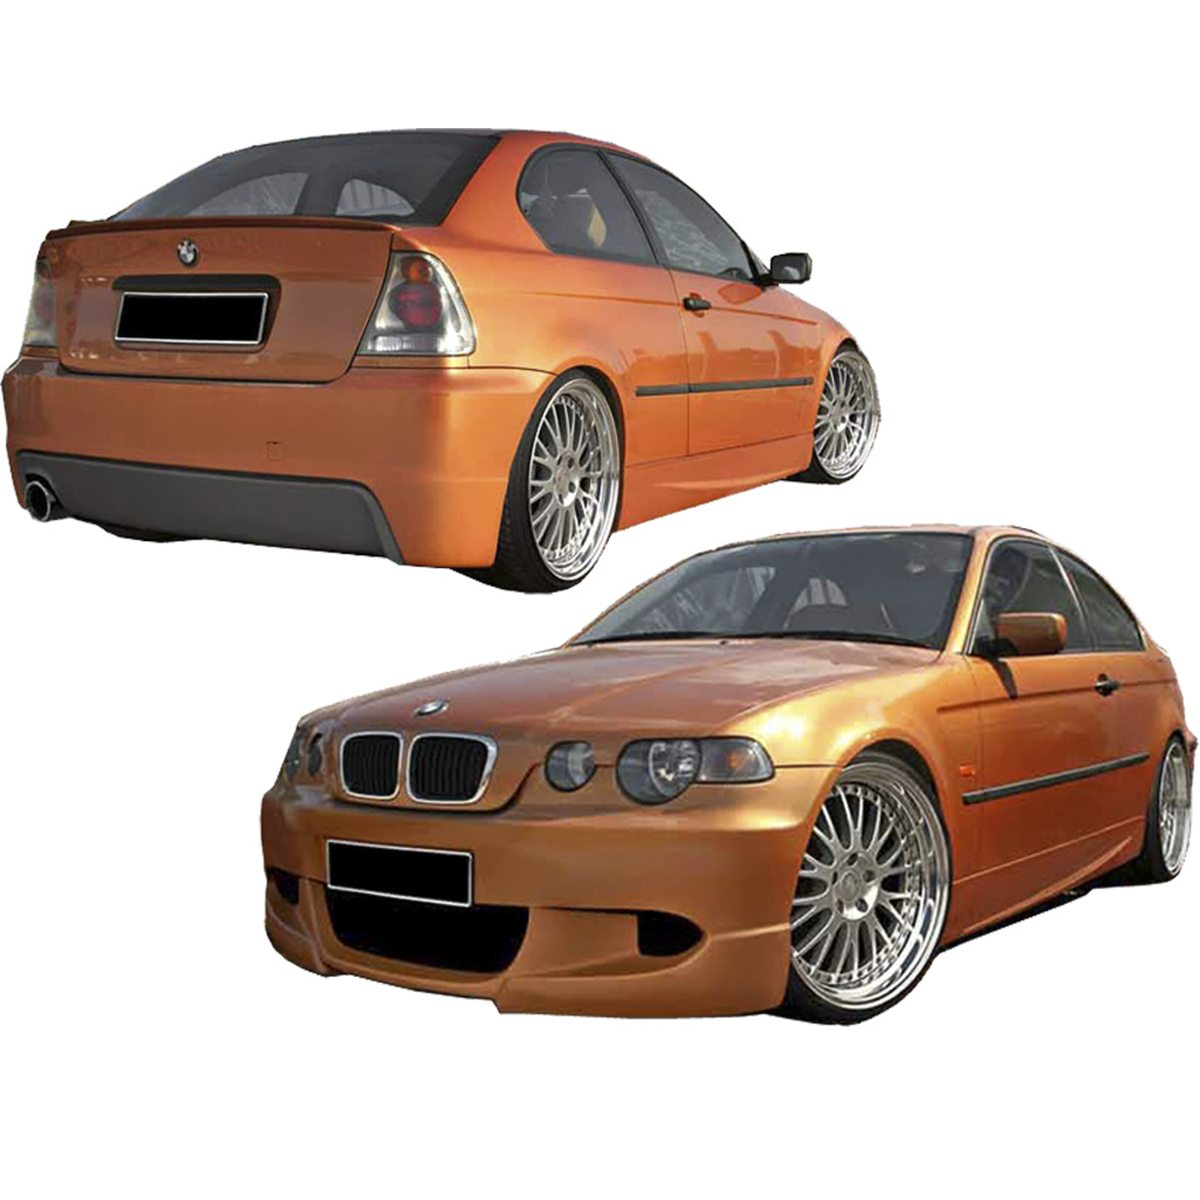 BMW-E46-Compact-2001-KIT-KTS016